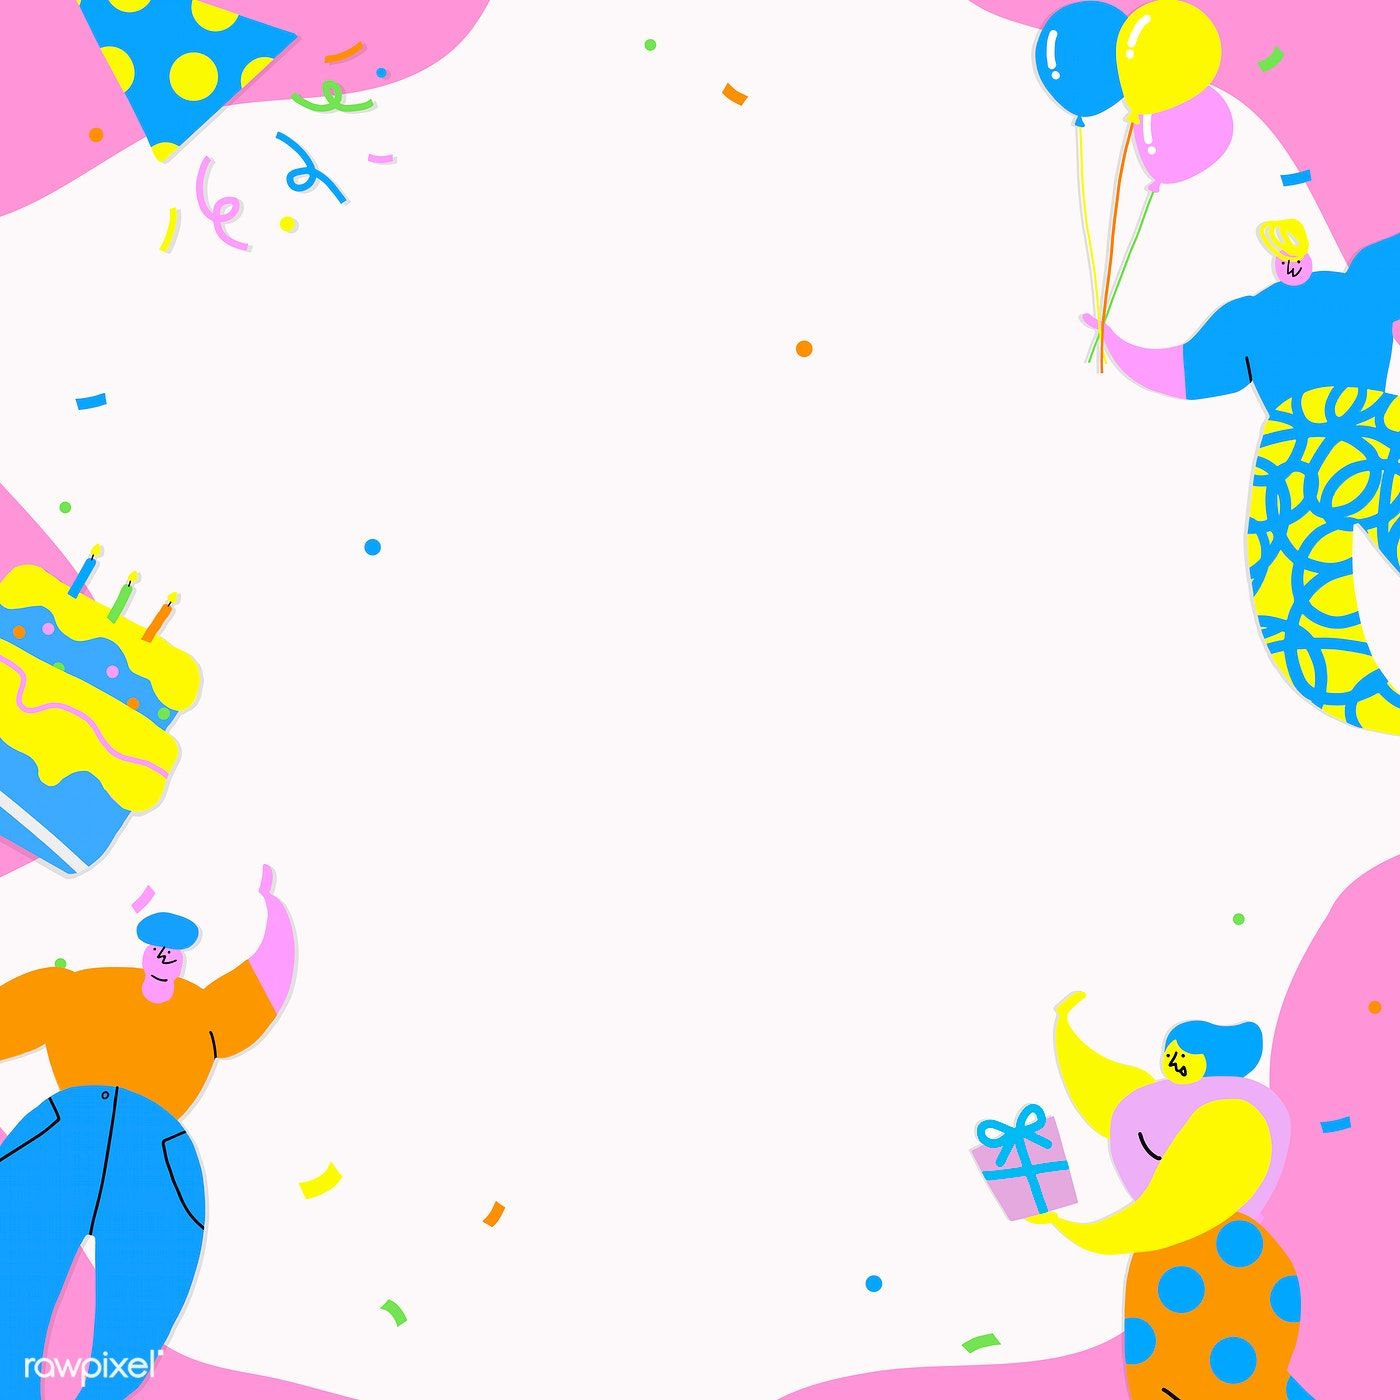 People Celebrating A Birthday Party Background Vector Free Image By Rawpixel Com Nunny Watercolor Pattern Background Birthday Party Background Vector Free